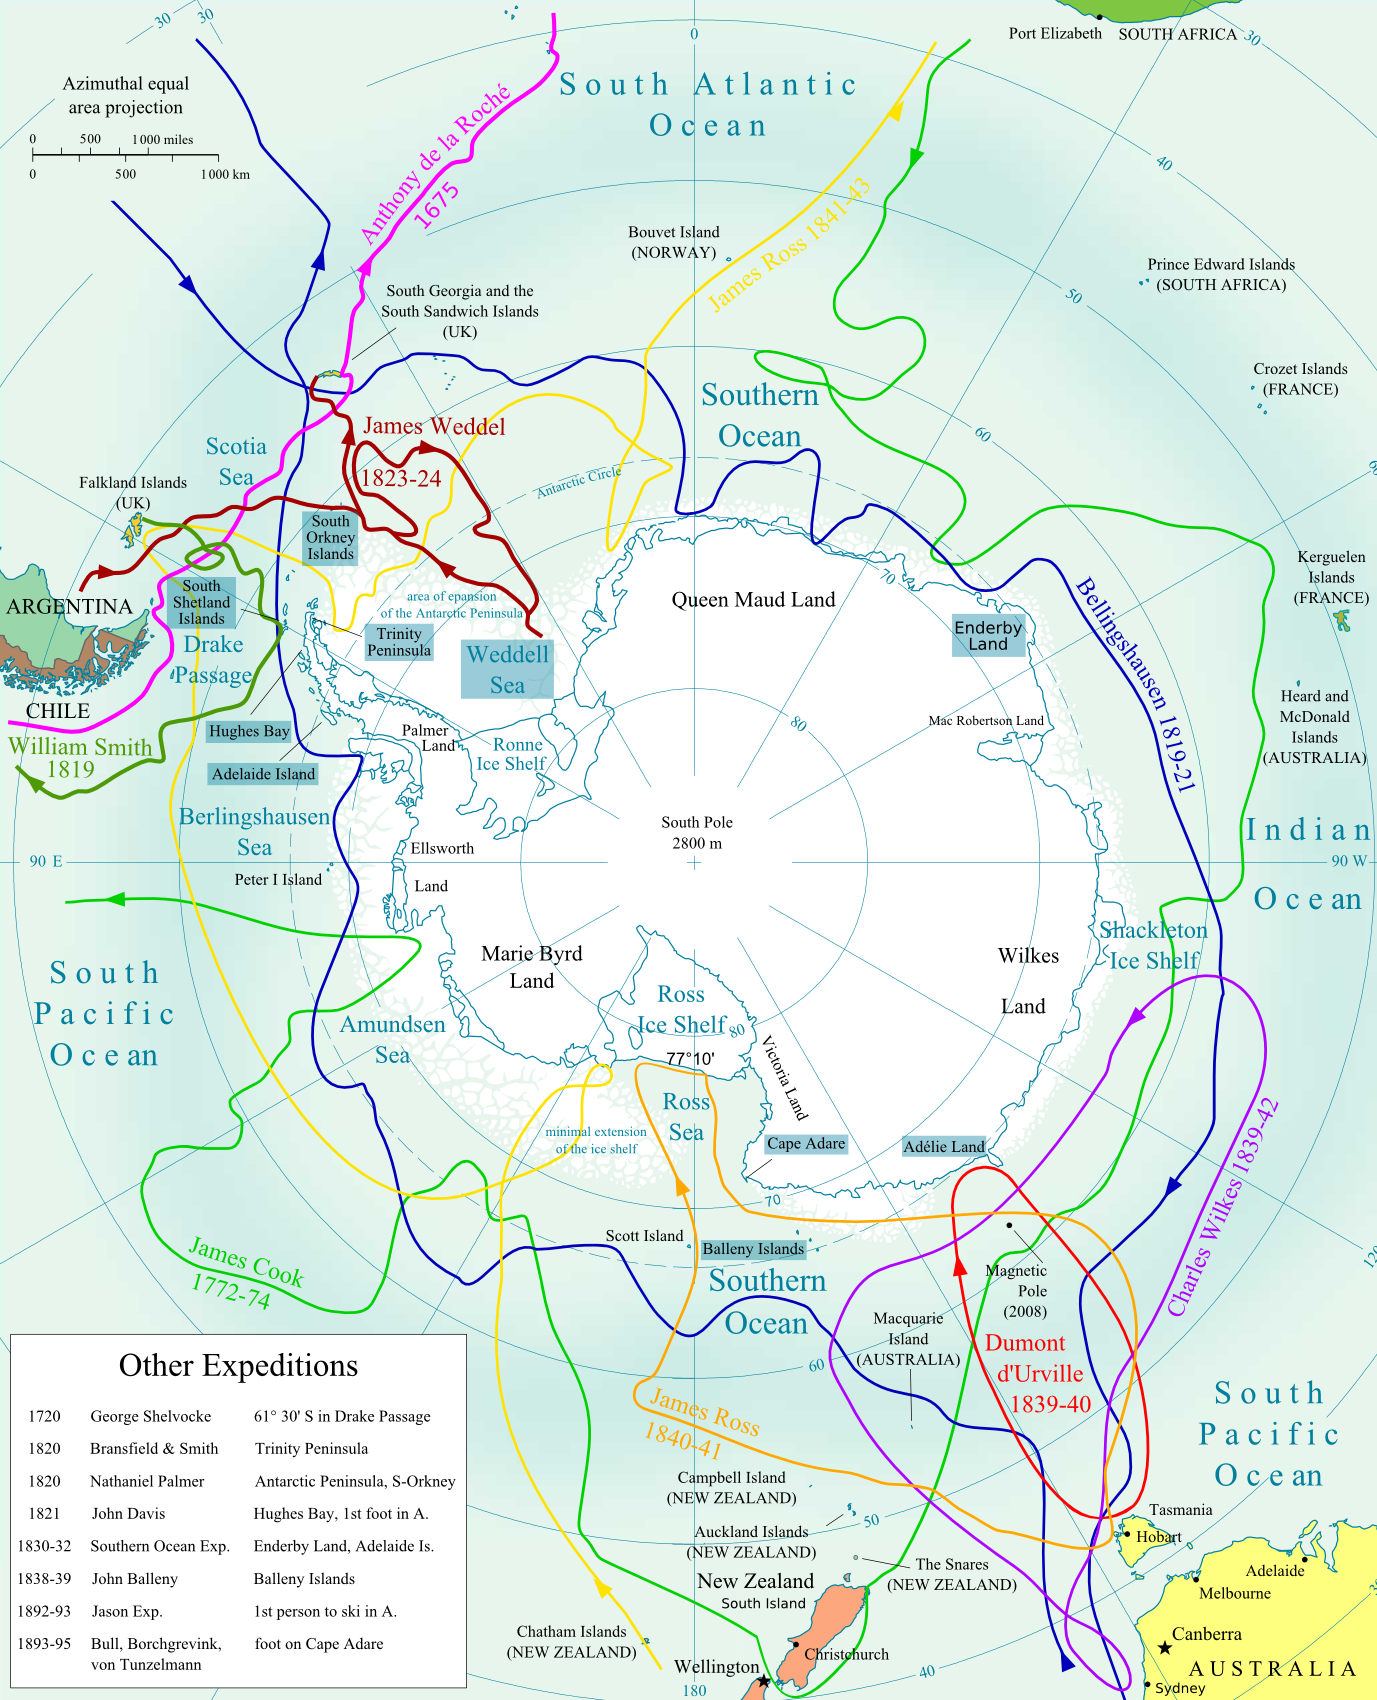 Expeditions in Antarctica before the Heroic Age of Antarctic